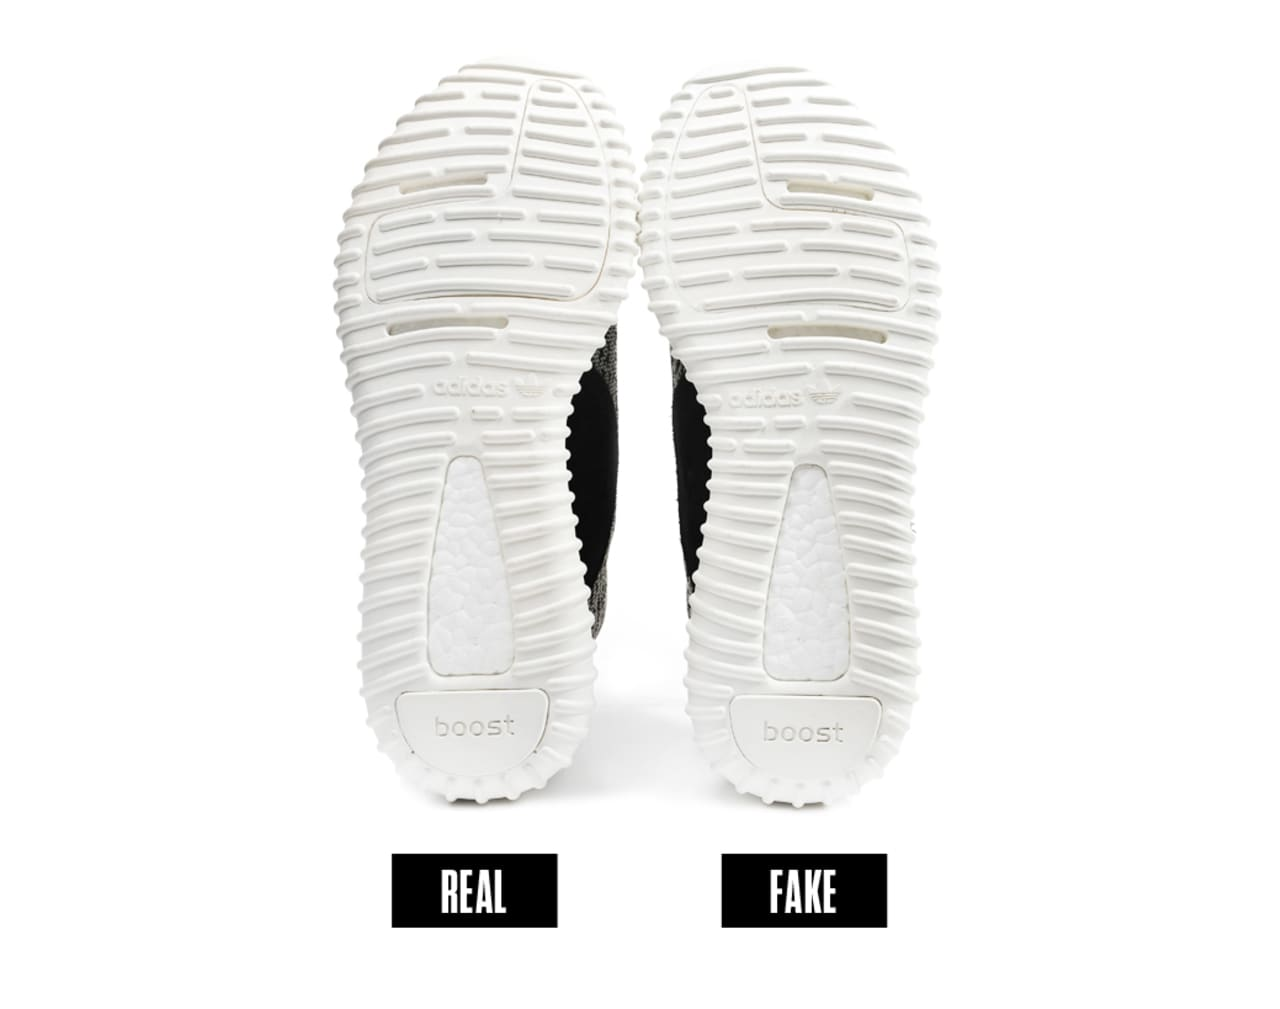 Fake Shoe Collectors Share Their